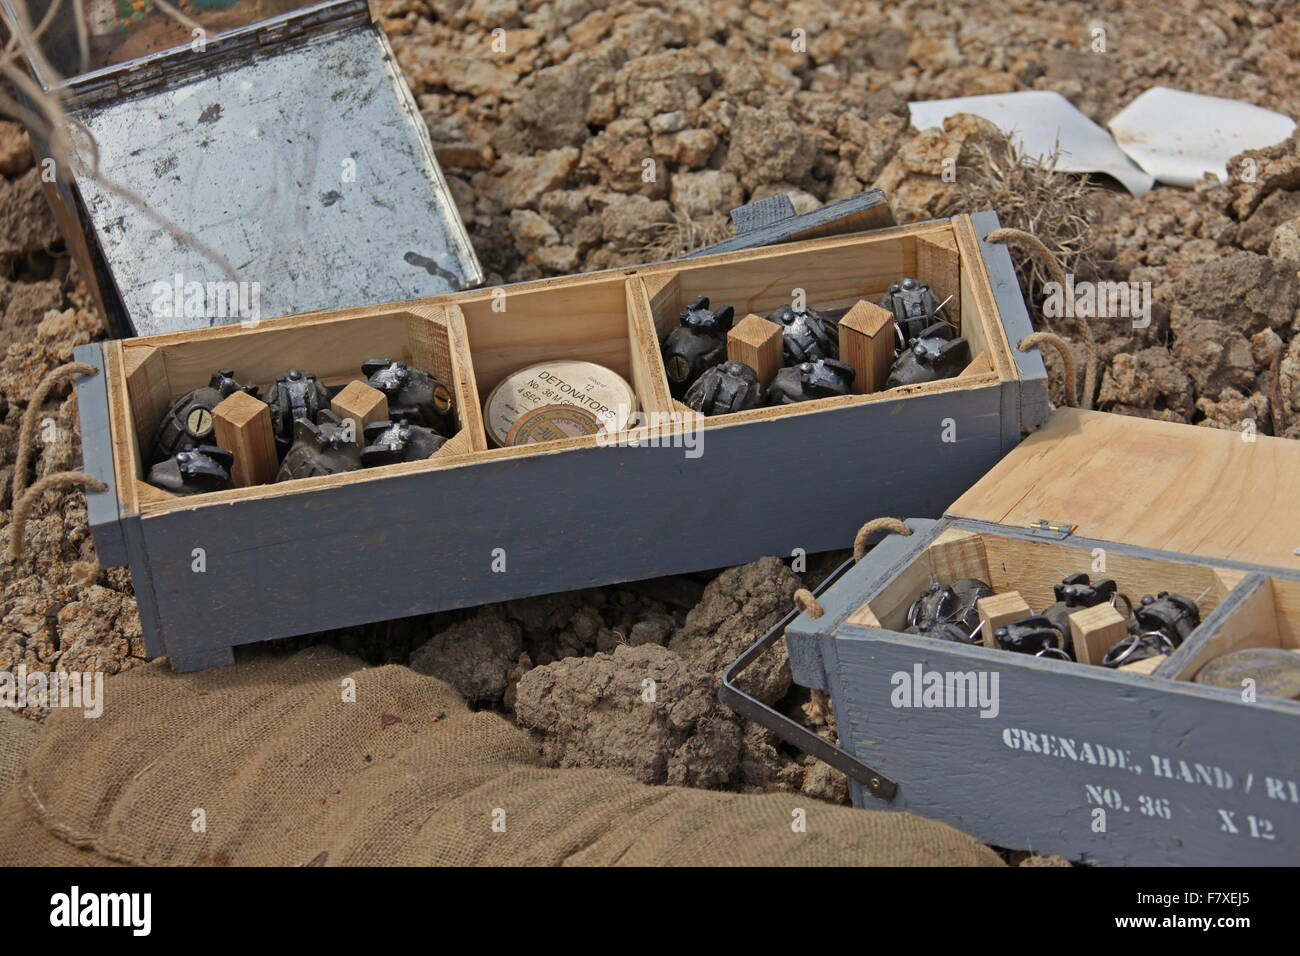 A re-enactors box of 36 Mills grenades on display in a trench like setting during a military display. - Stock Image